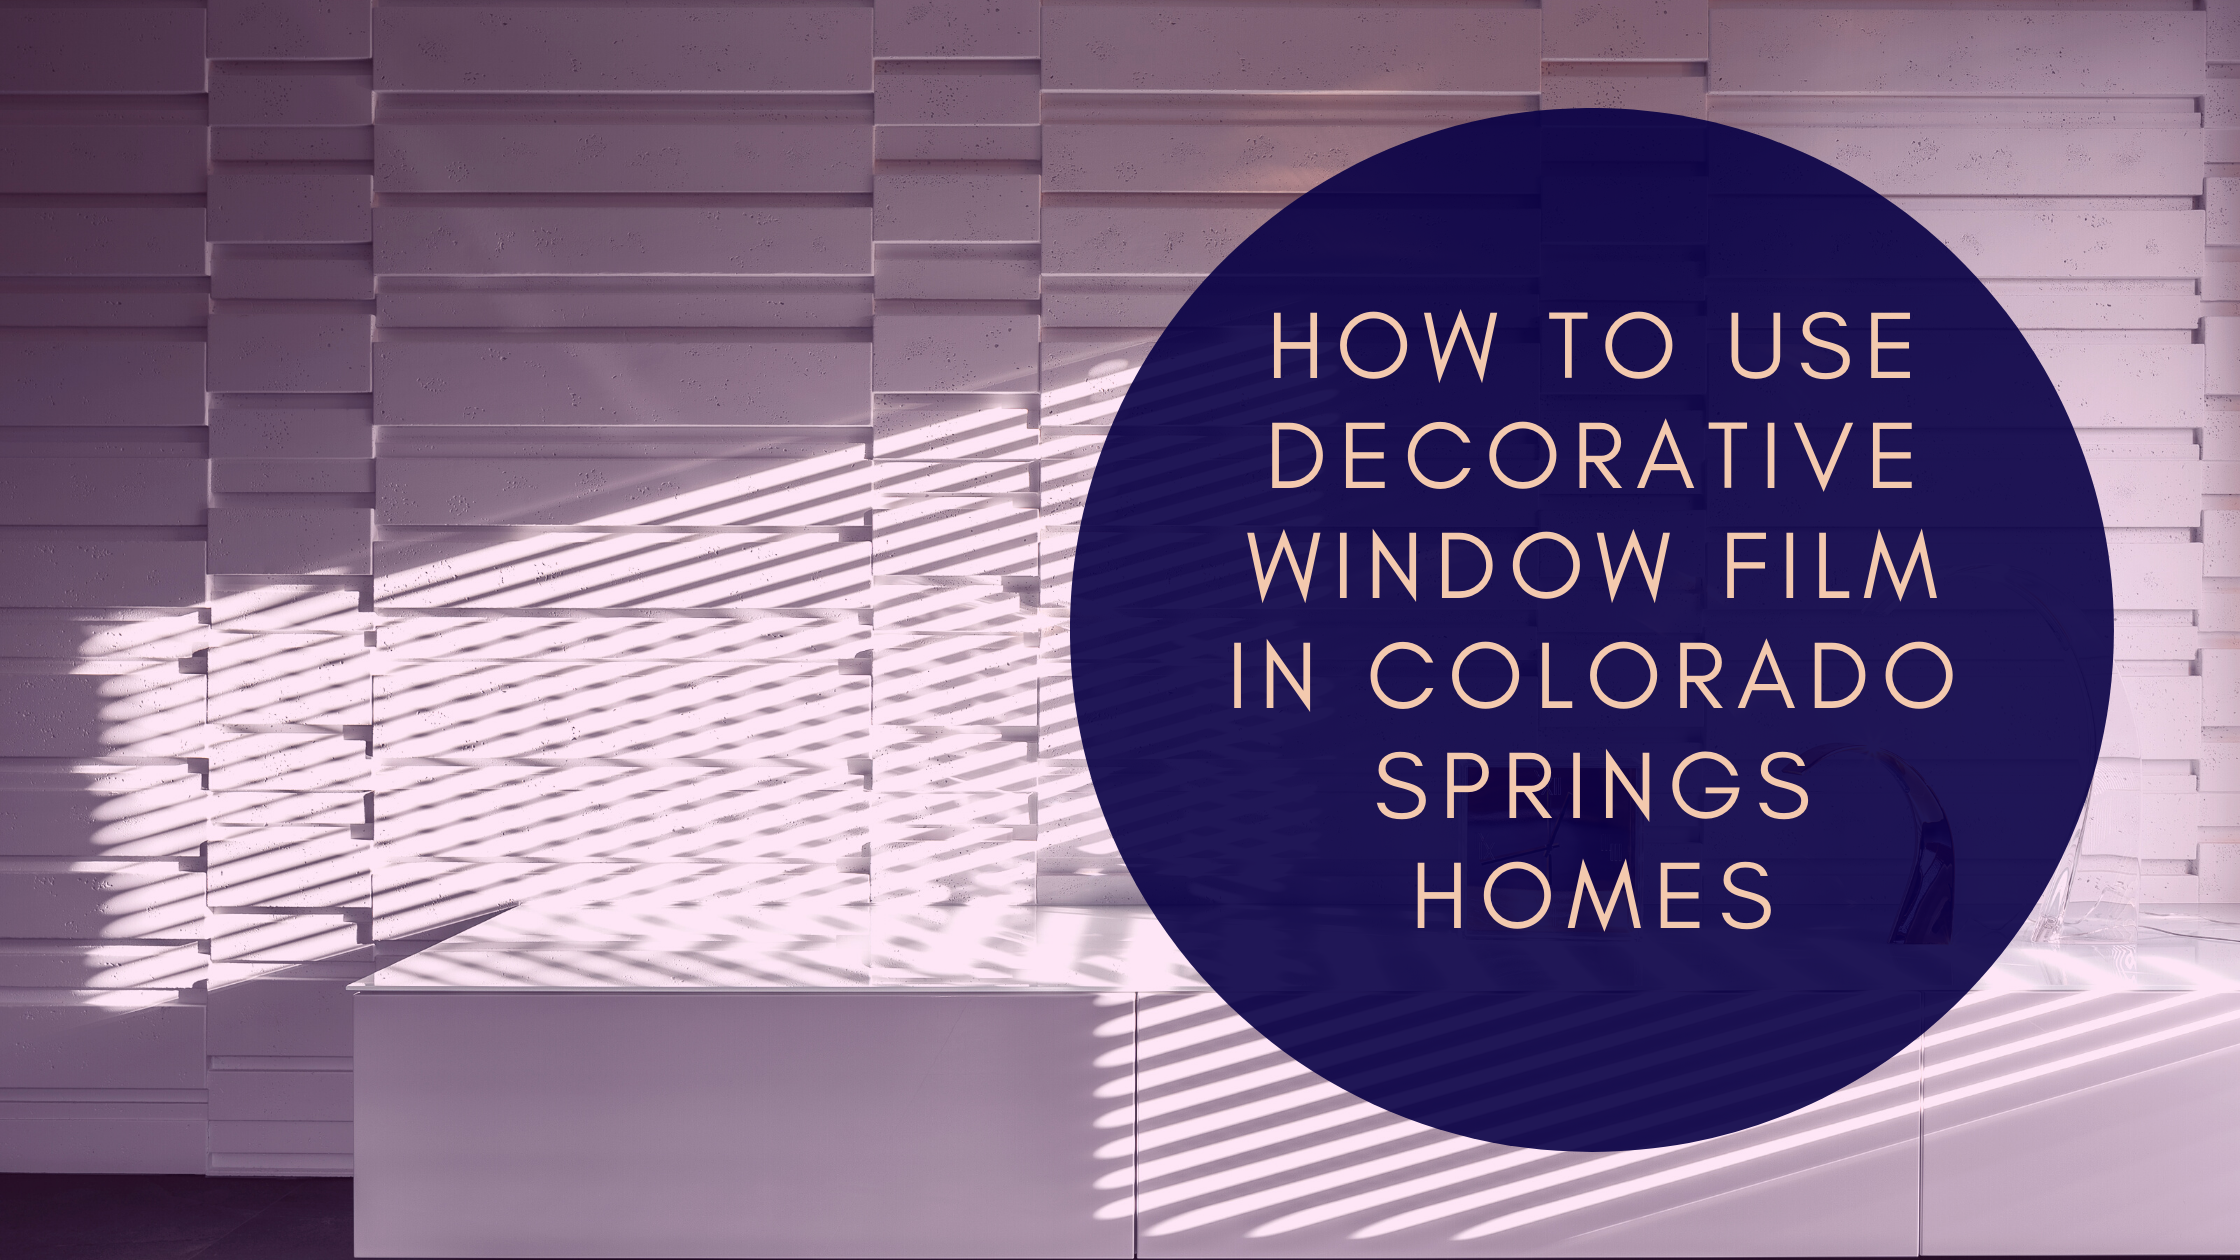 How to Use Decorative Window Film In Colorado Springs Homes